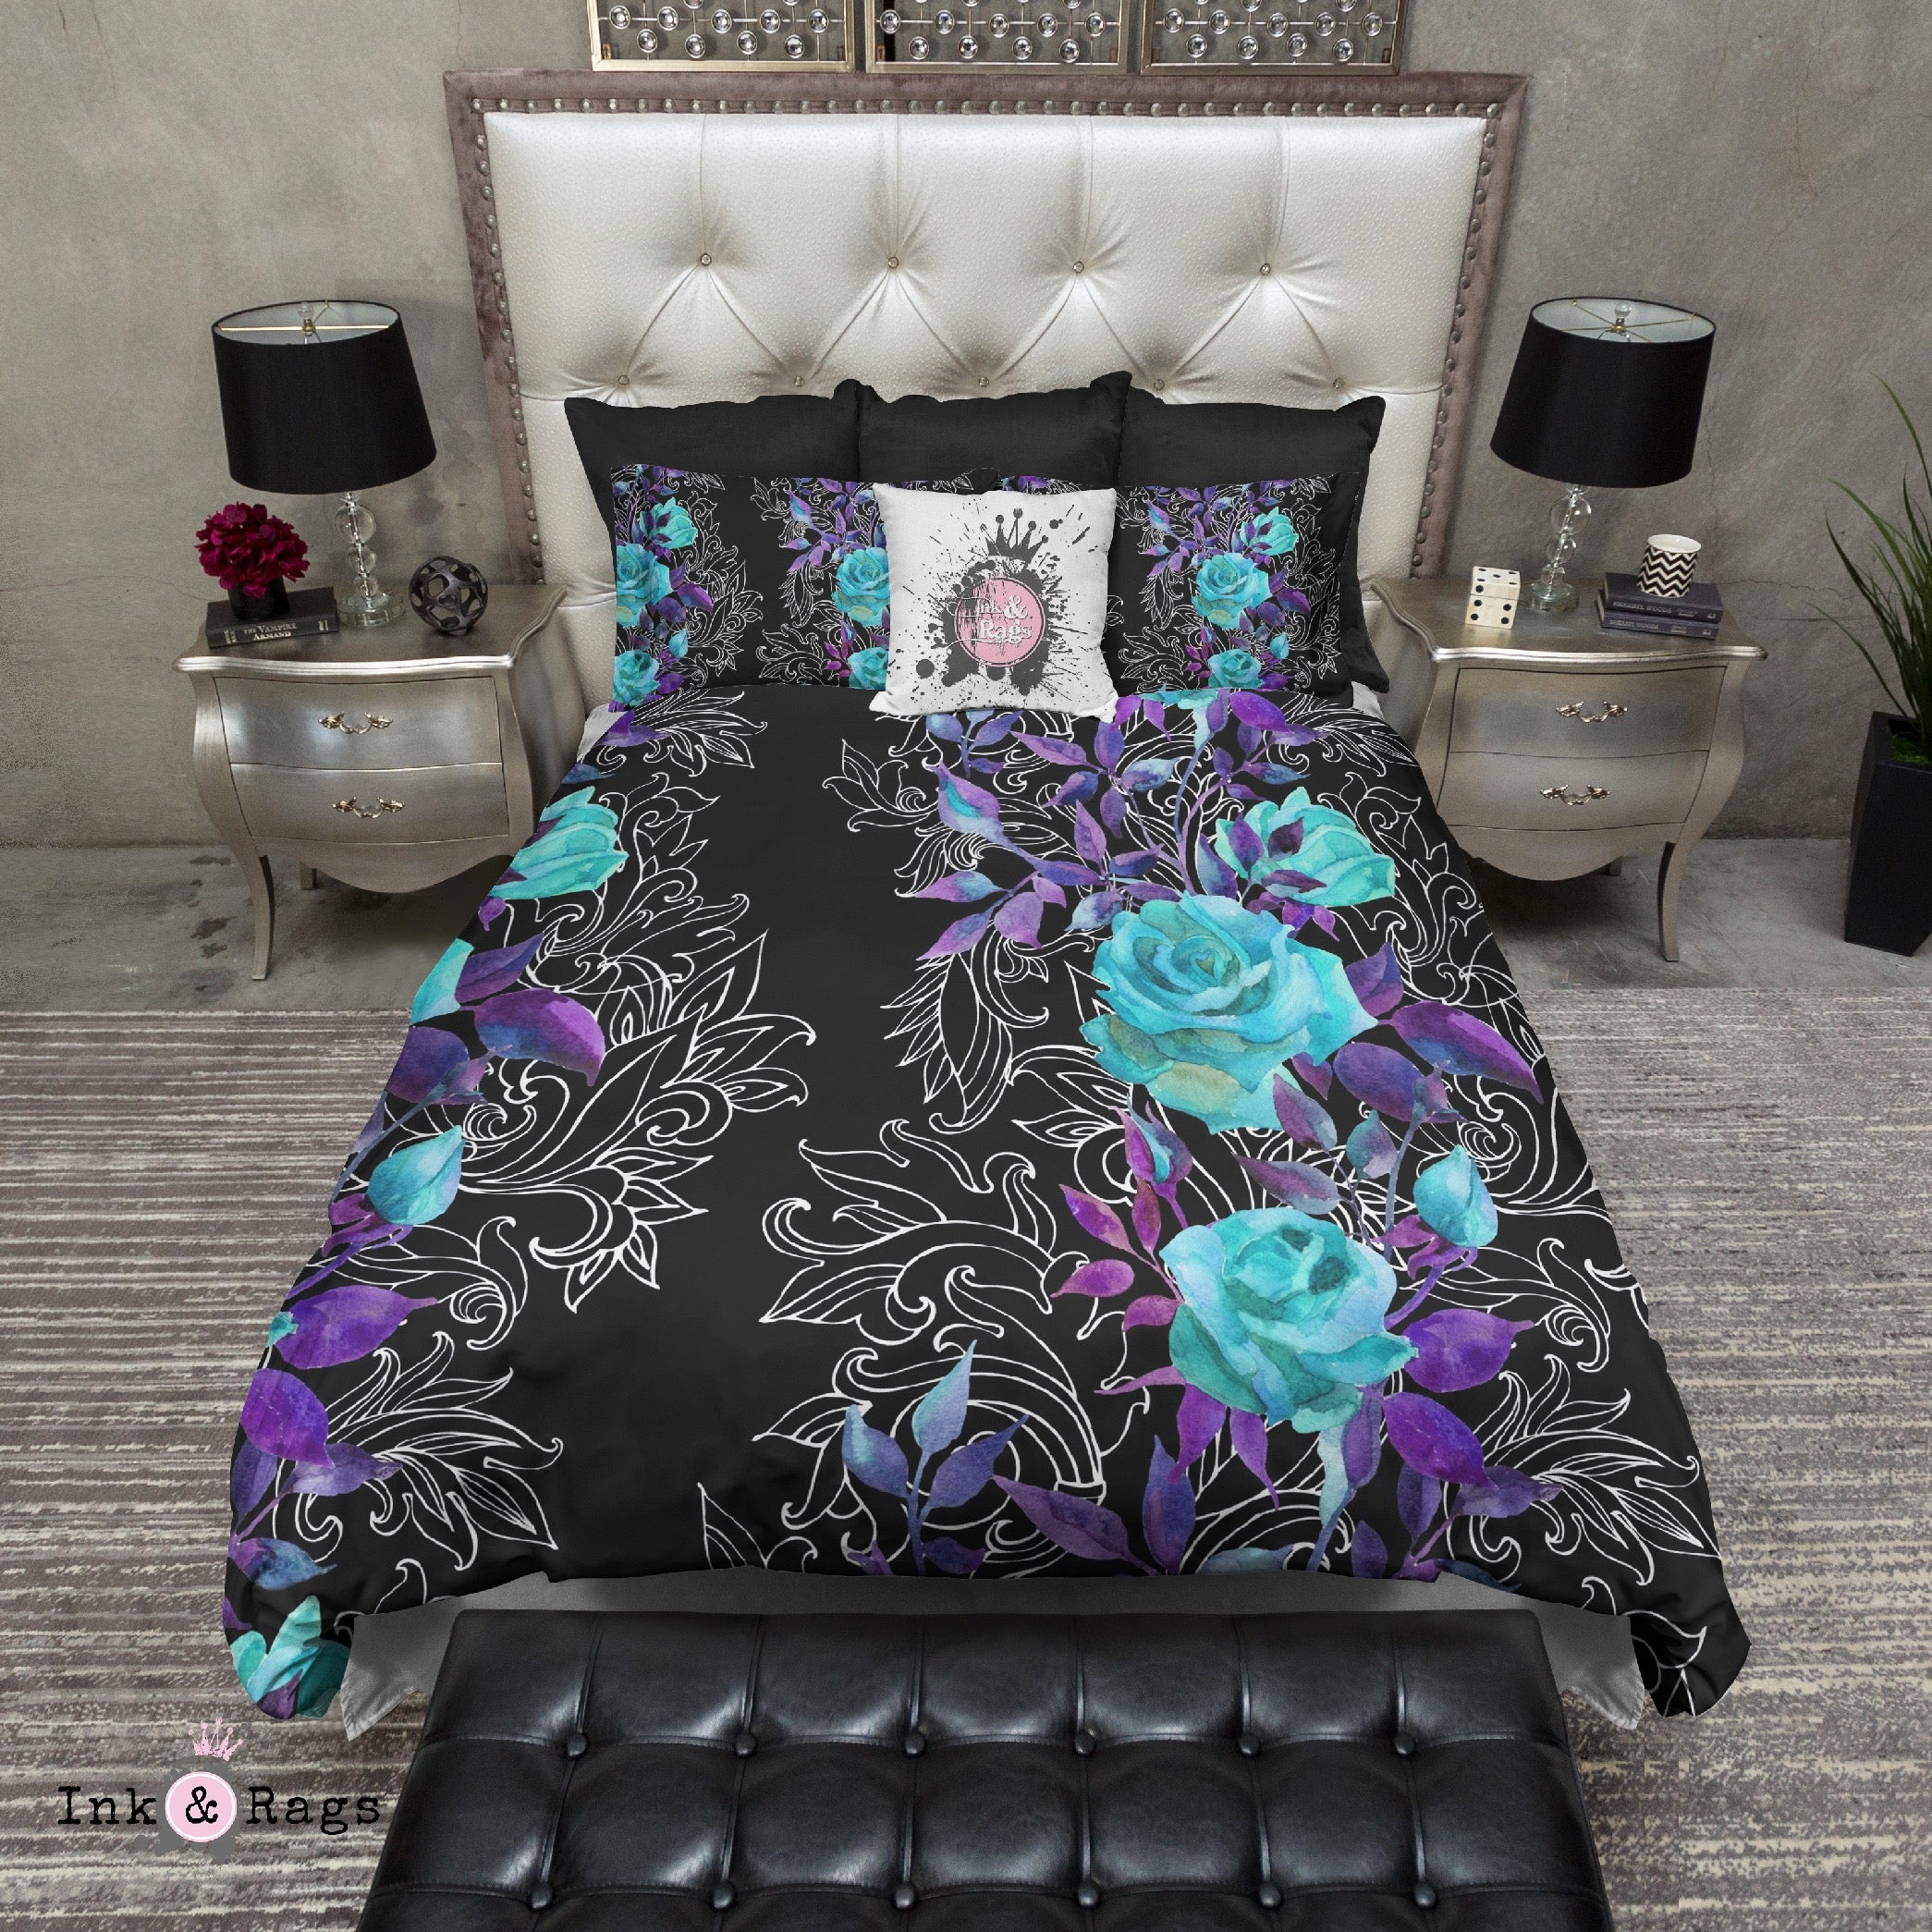 Turquoise and Purple Rose with Hand Drawn Scroll Work Bedding Ink